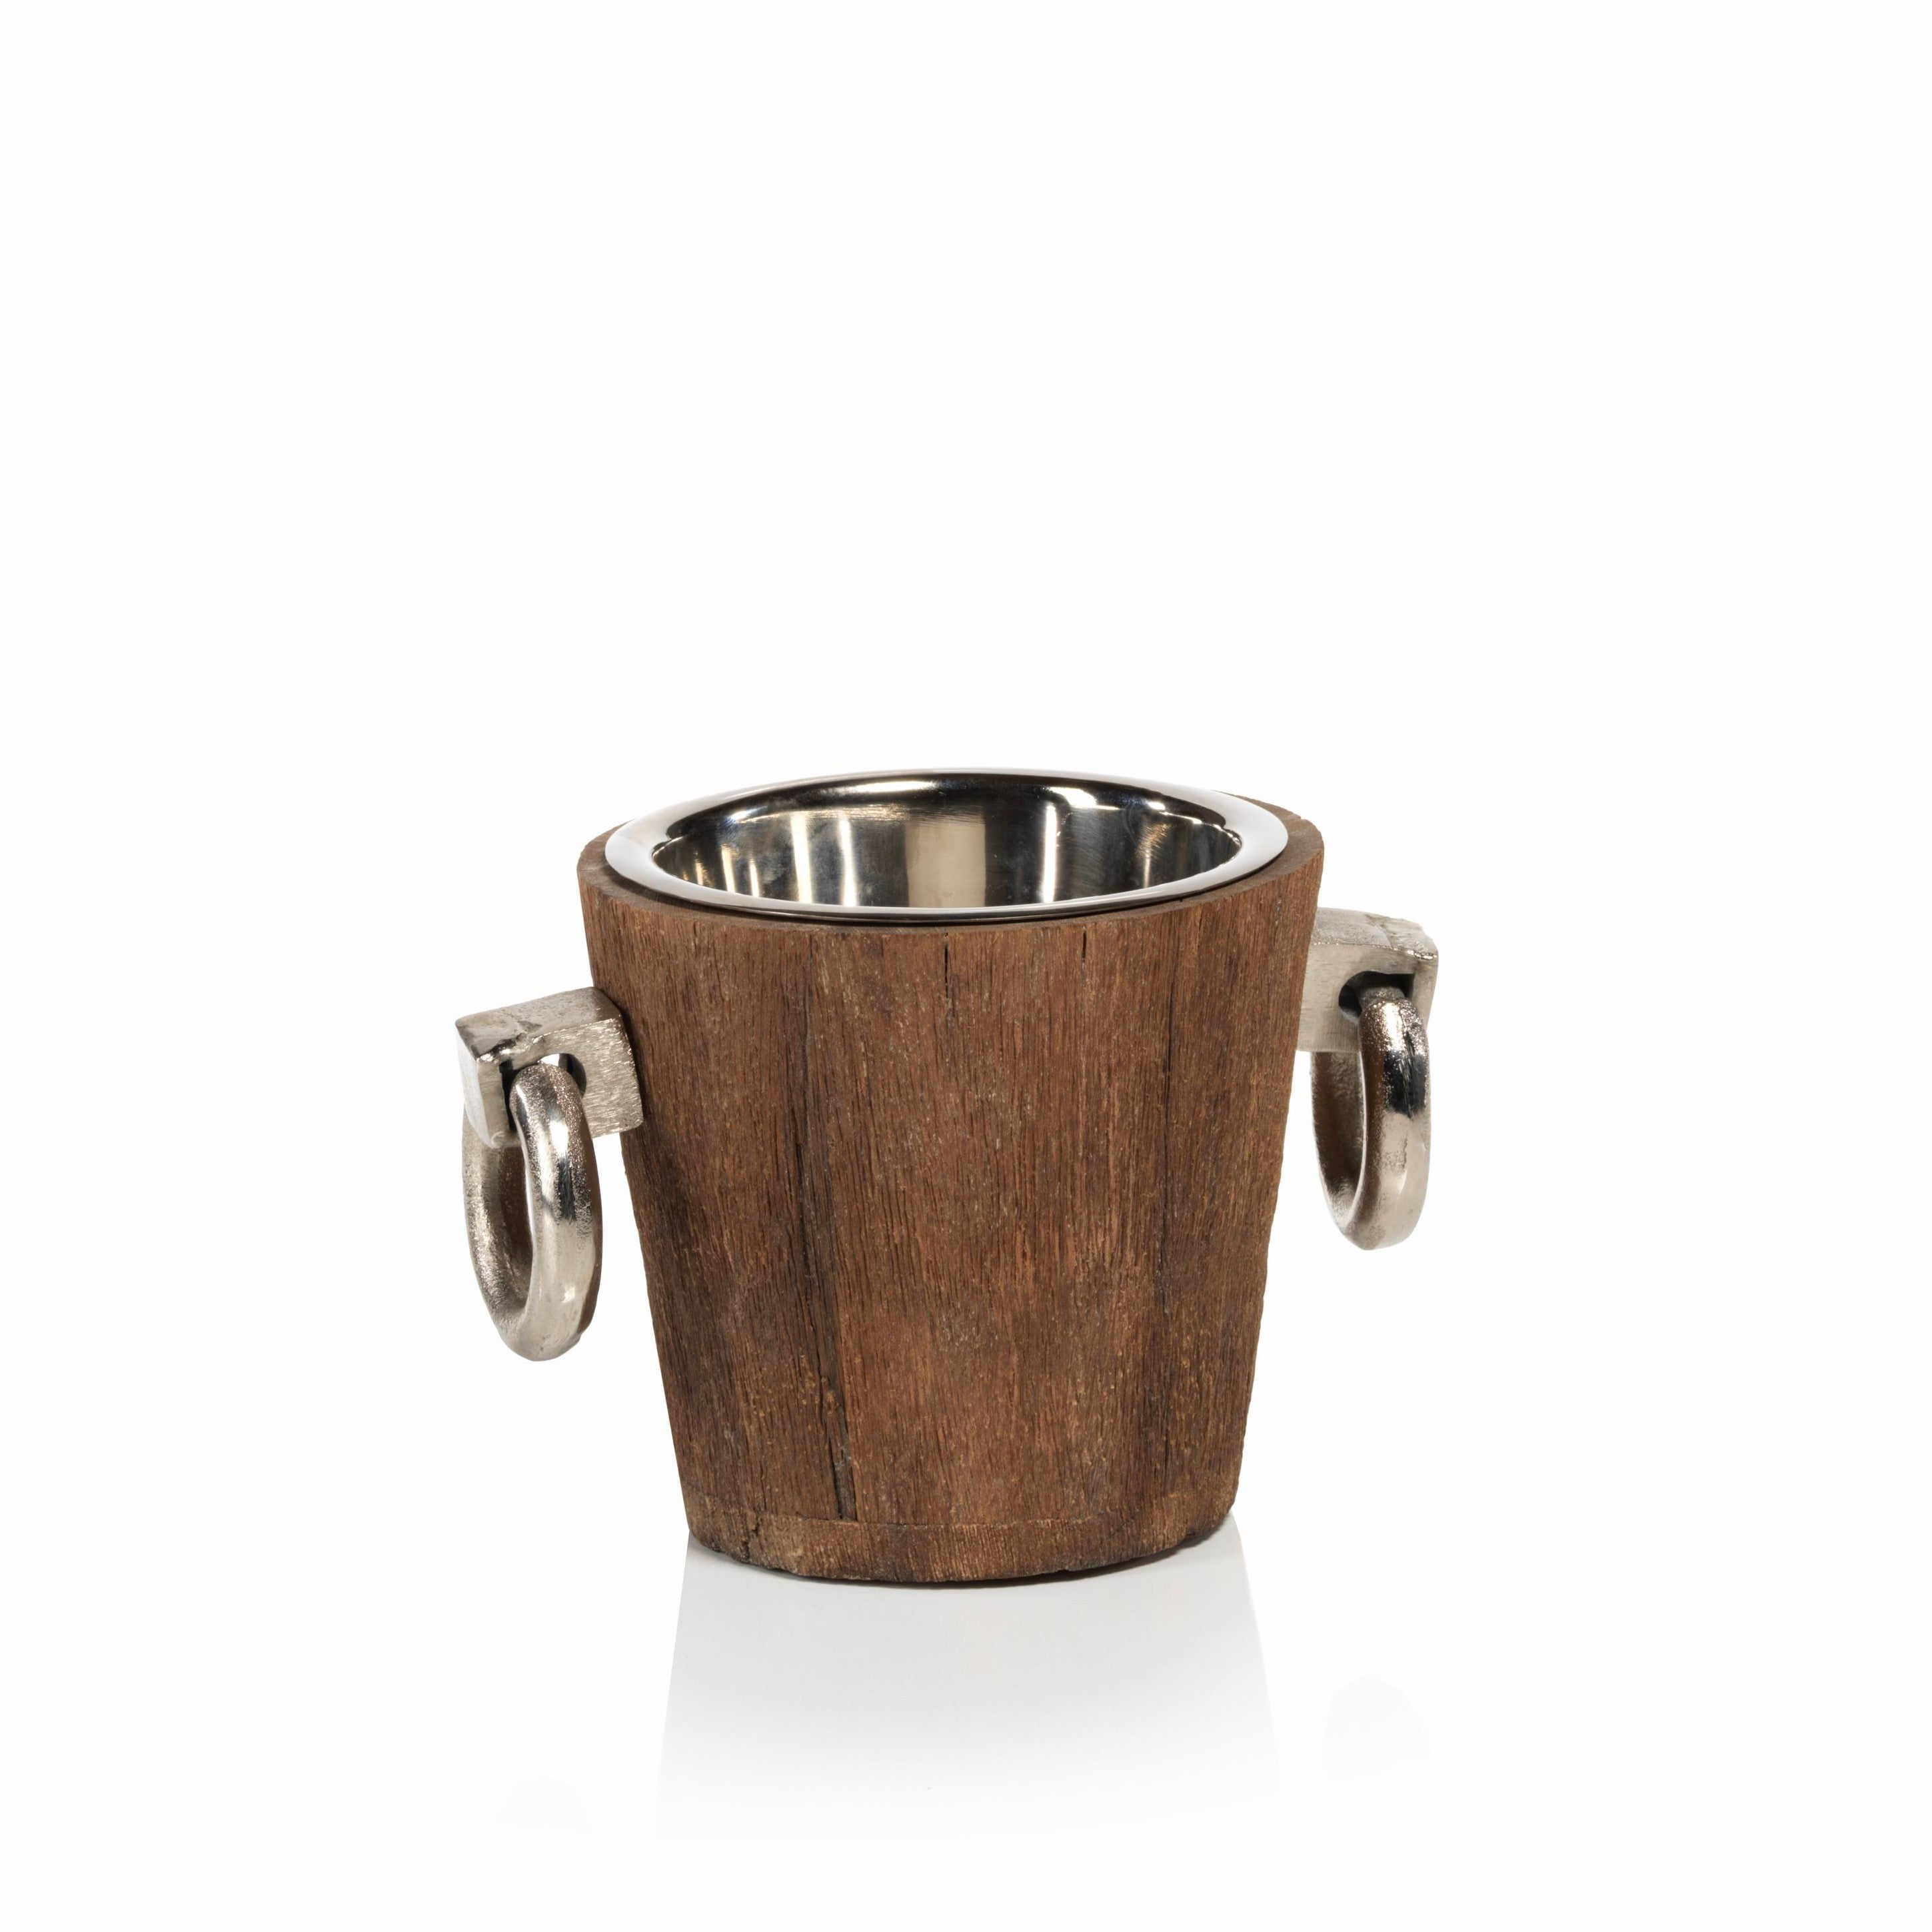 Reclaimed Wood/Metal Bucket - Small - CARLYLE AVENUE